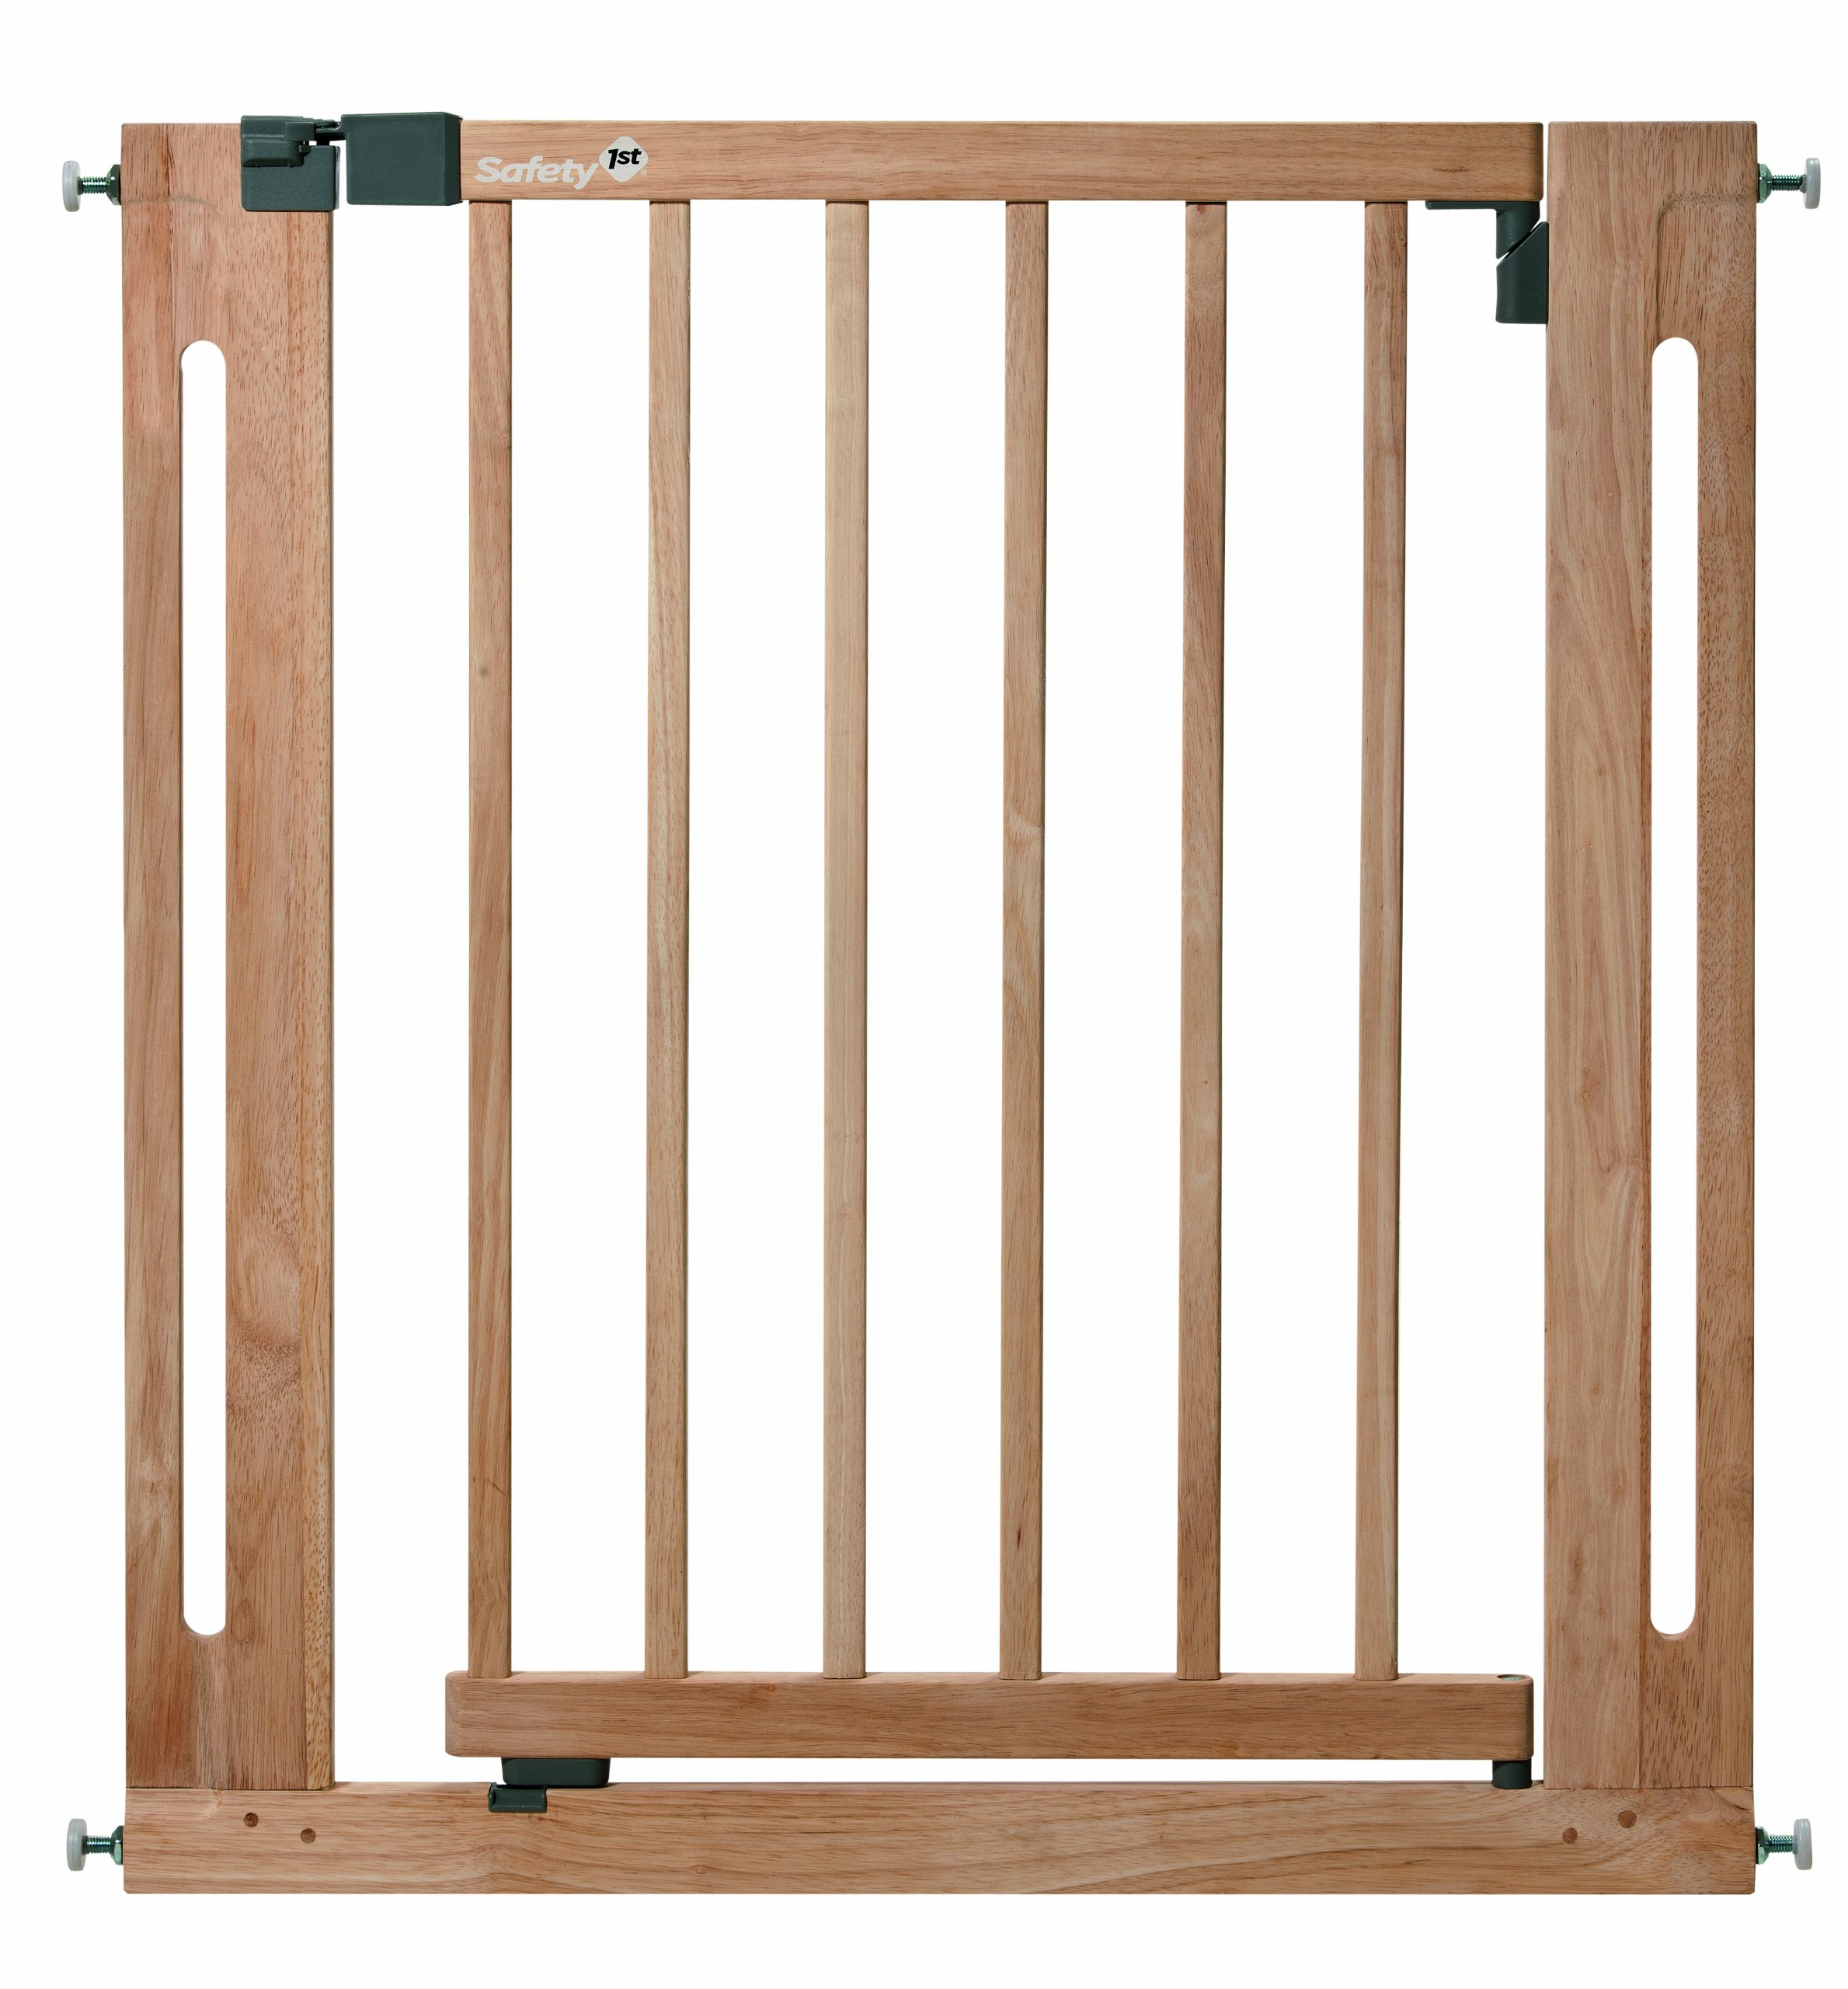 Safety 1st Easy Close Safety Gate Made from Wood / Pressure Fit / Natural  Stable door safety gate made of gum tree wood Easy to install due to 4-point clamping function Adjustable from 73 to 80.5 cm 1